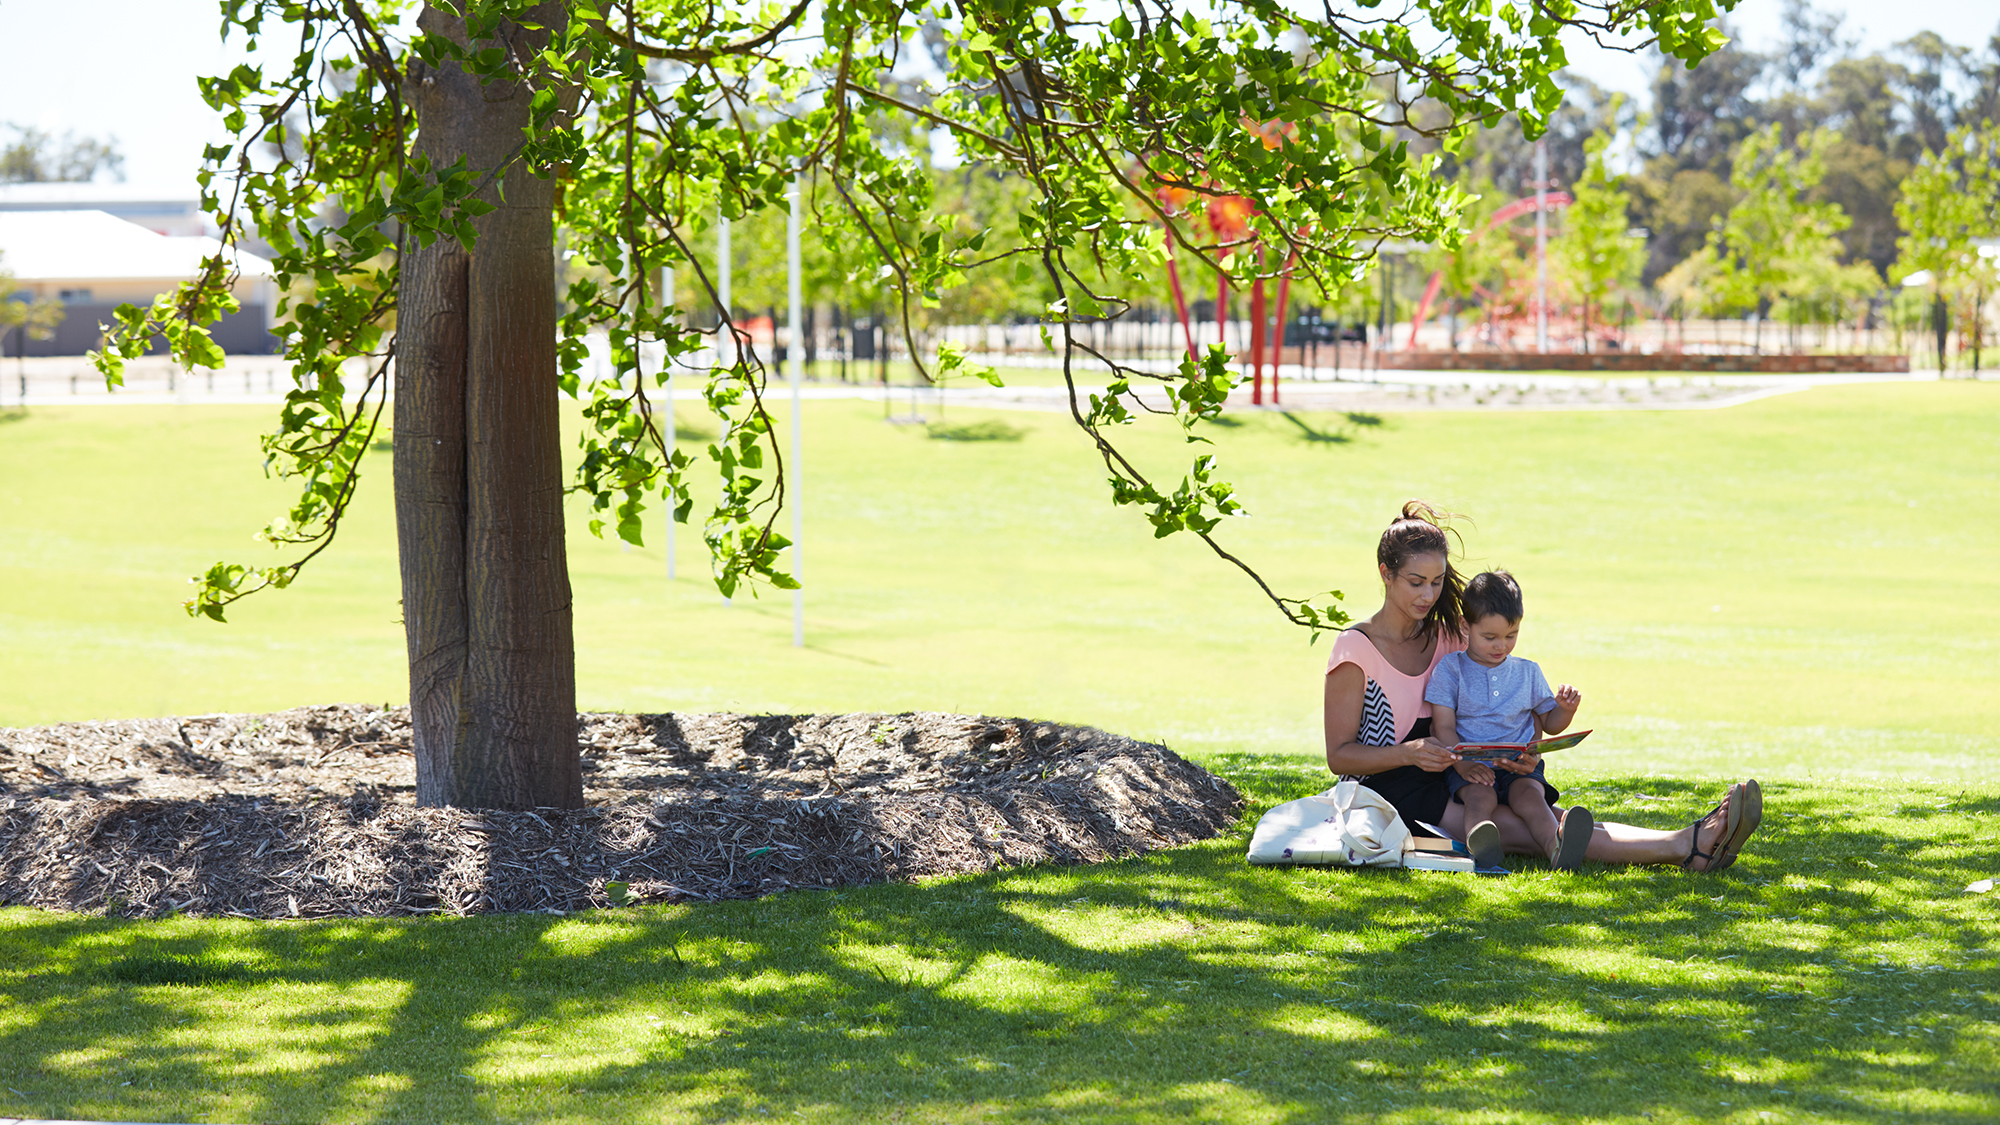 Mum and son in park